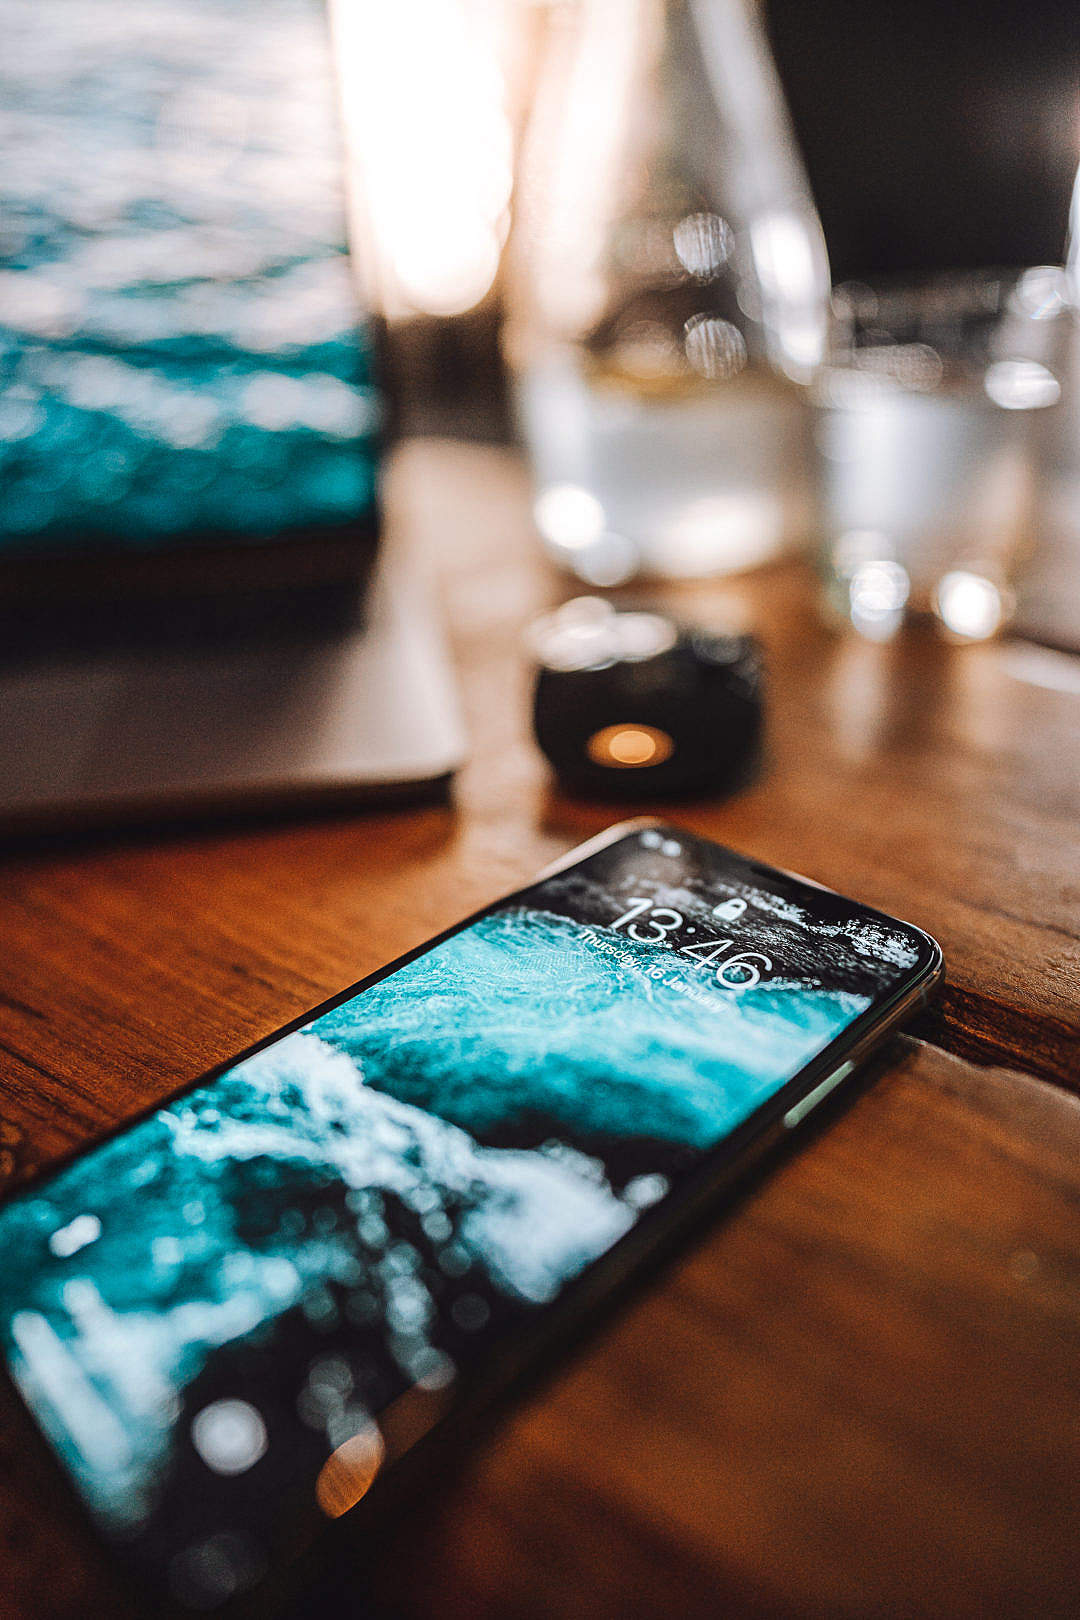 Download iPhone XS Lying on The Table FREE Stock Photo